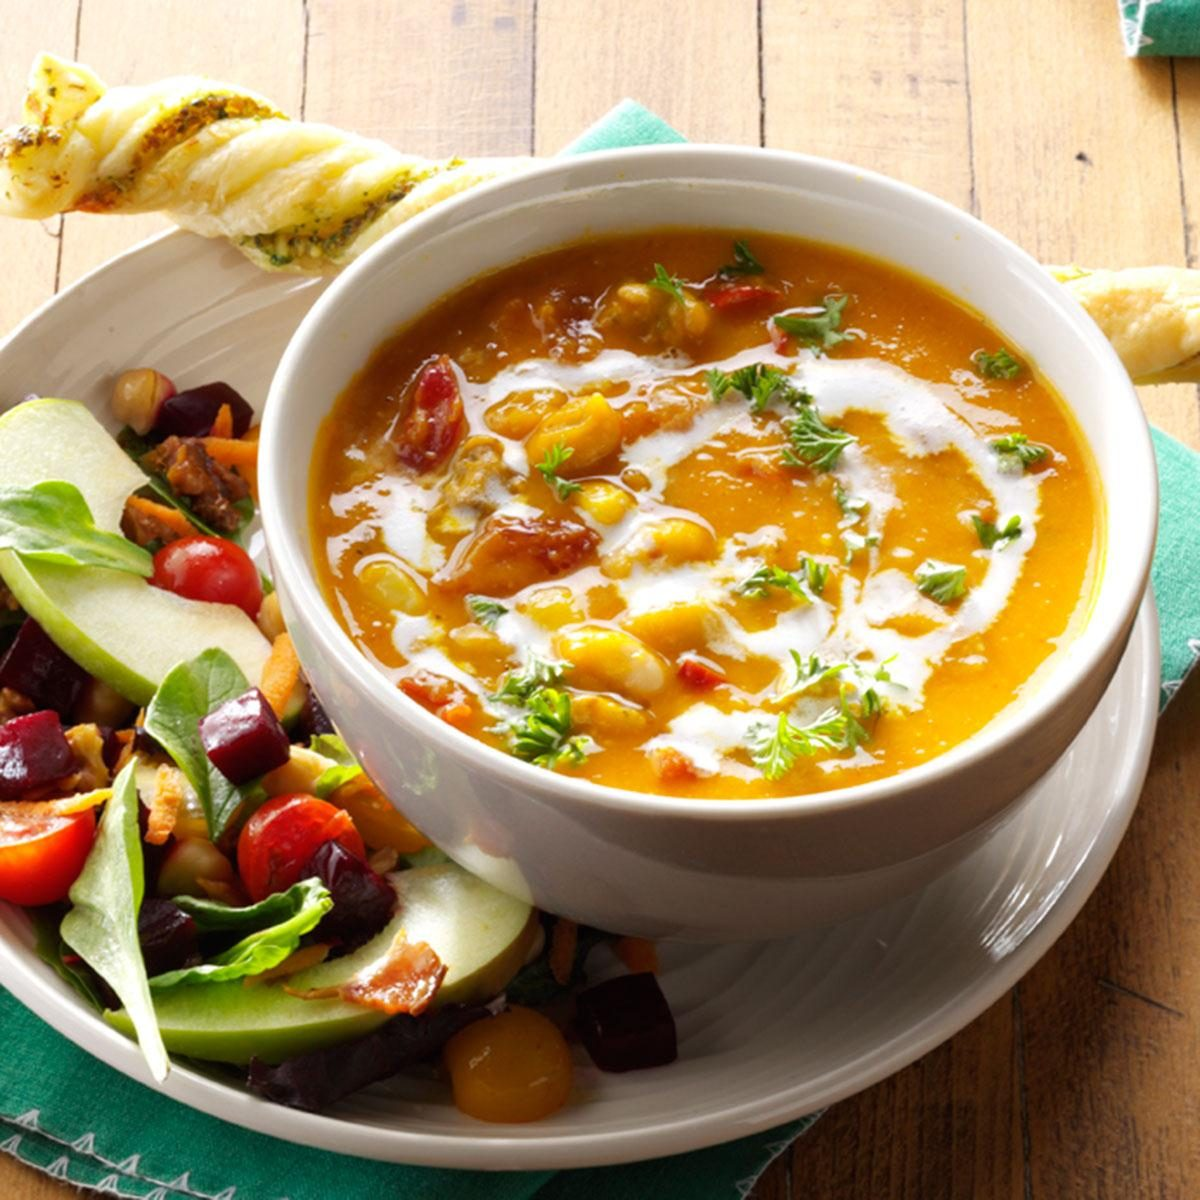 Day 12: Hearty Butternut Squash Soup